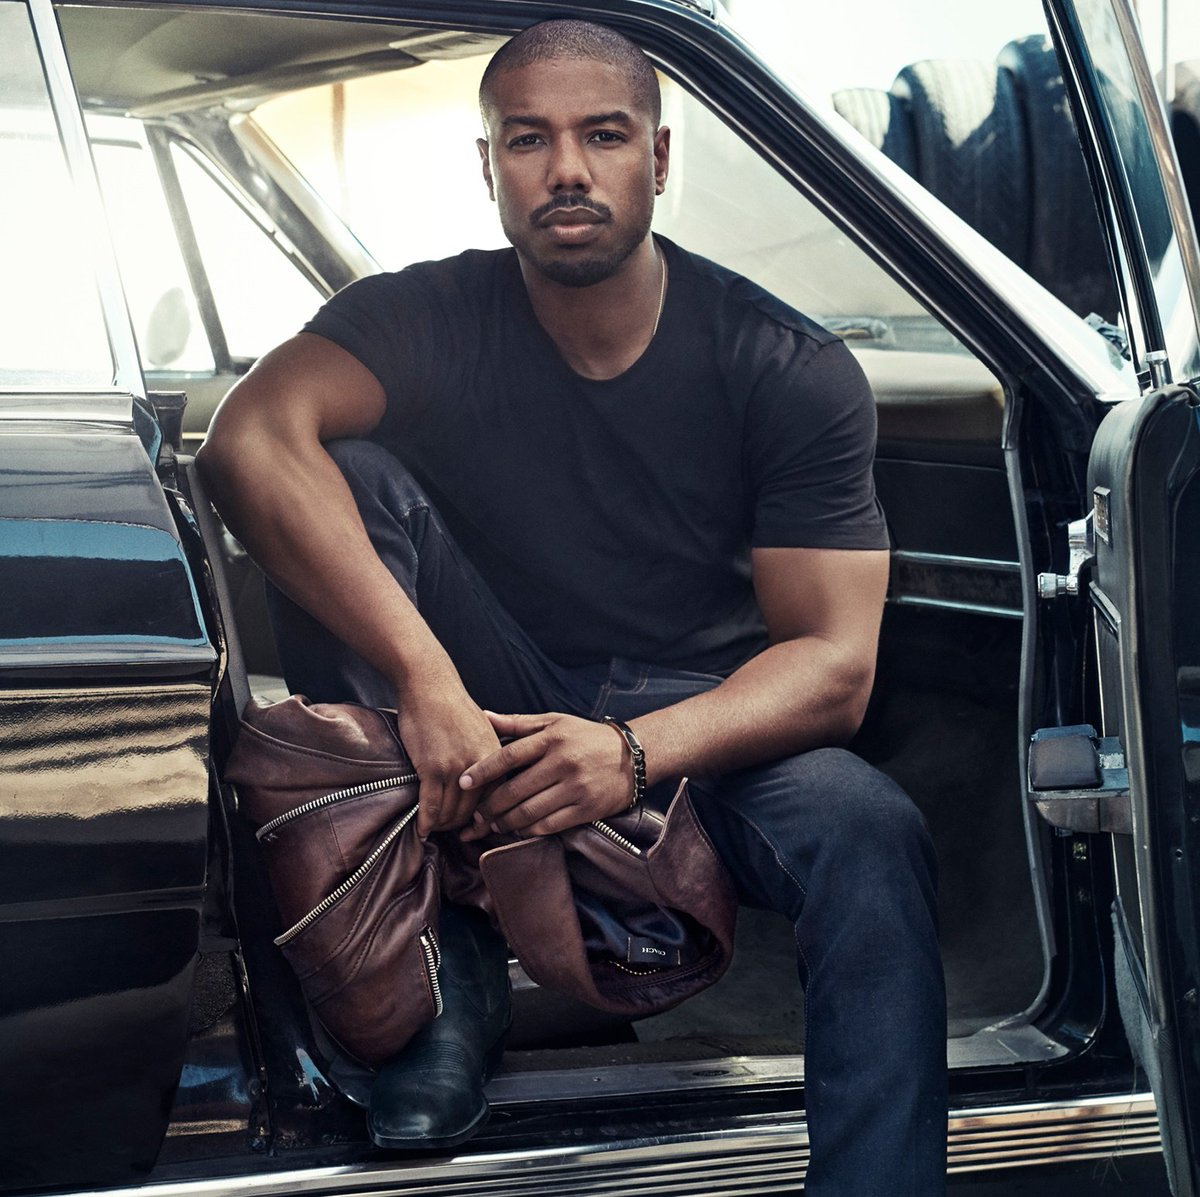 Rebels, mavericks, dreamers and #MichaelBJordan. What do they have in common? They all drive their lives in #CoachPlatinum and #CoachforMen scents. http://on.coach.com/MenFragrance #CoachNY